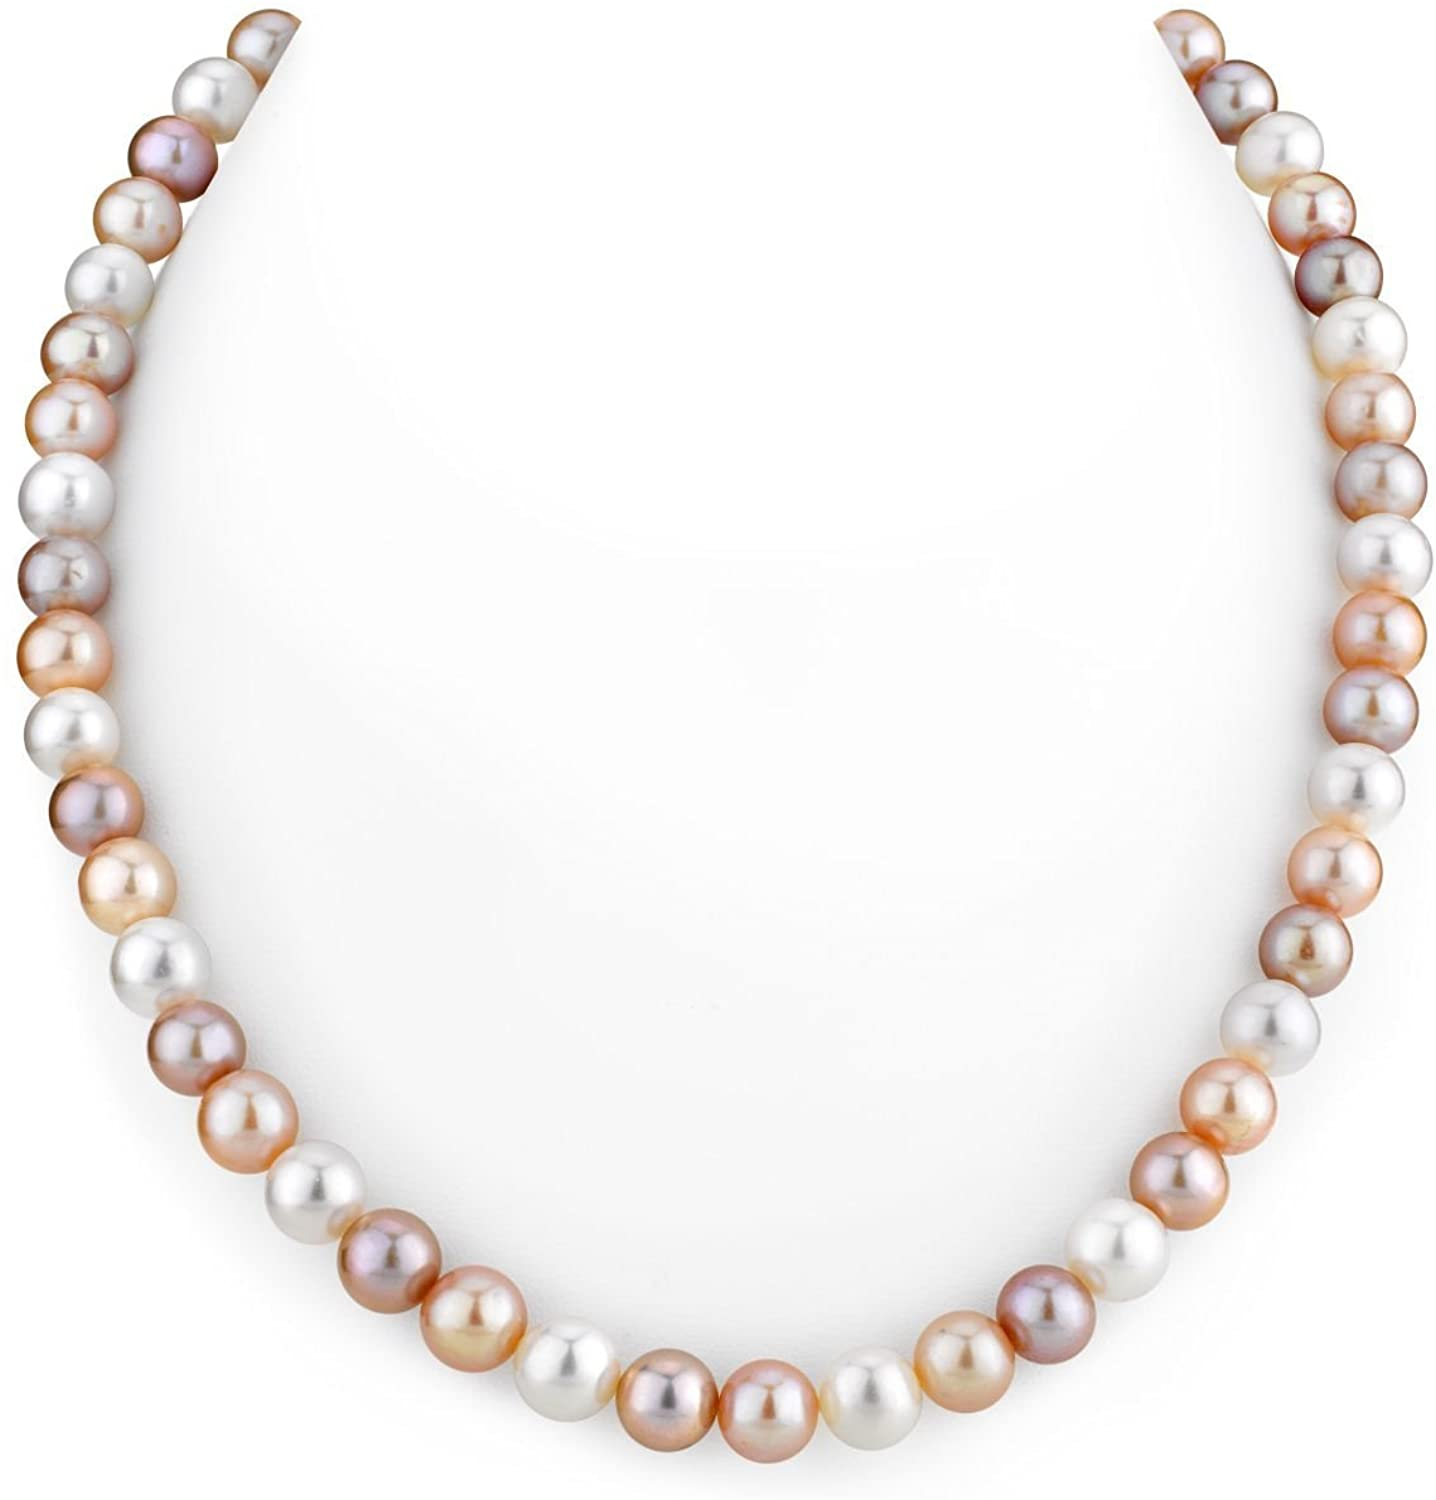 THE PEARL SOURCE 14K Gold 7-8mm AAAA Quality Multicolor Freshwater Cultured Pearl Necklace for Women in 24